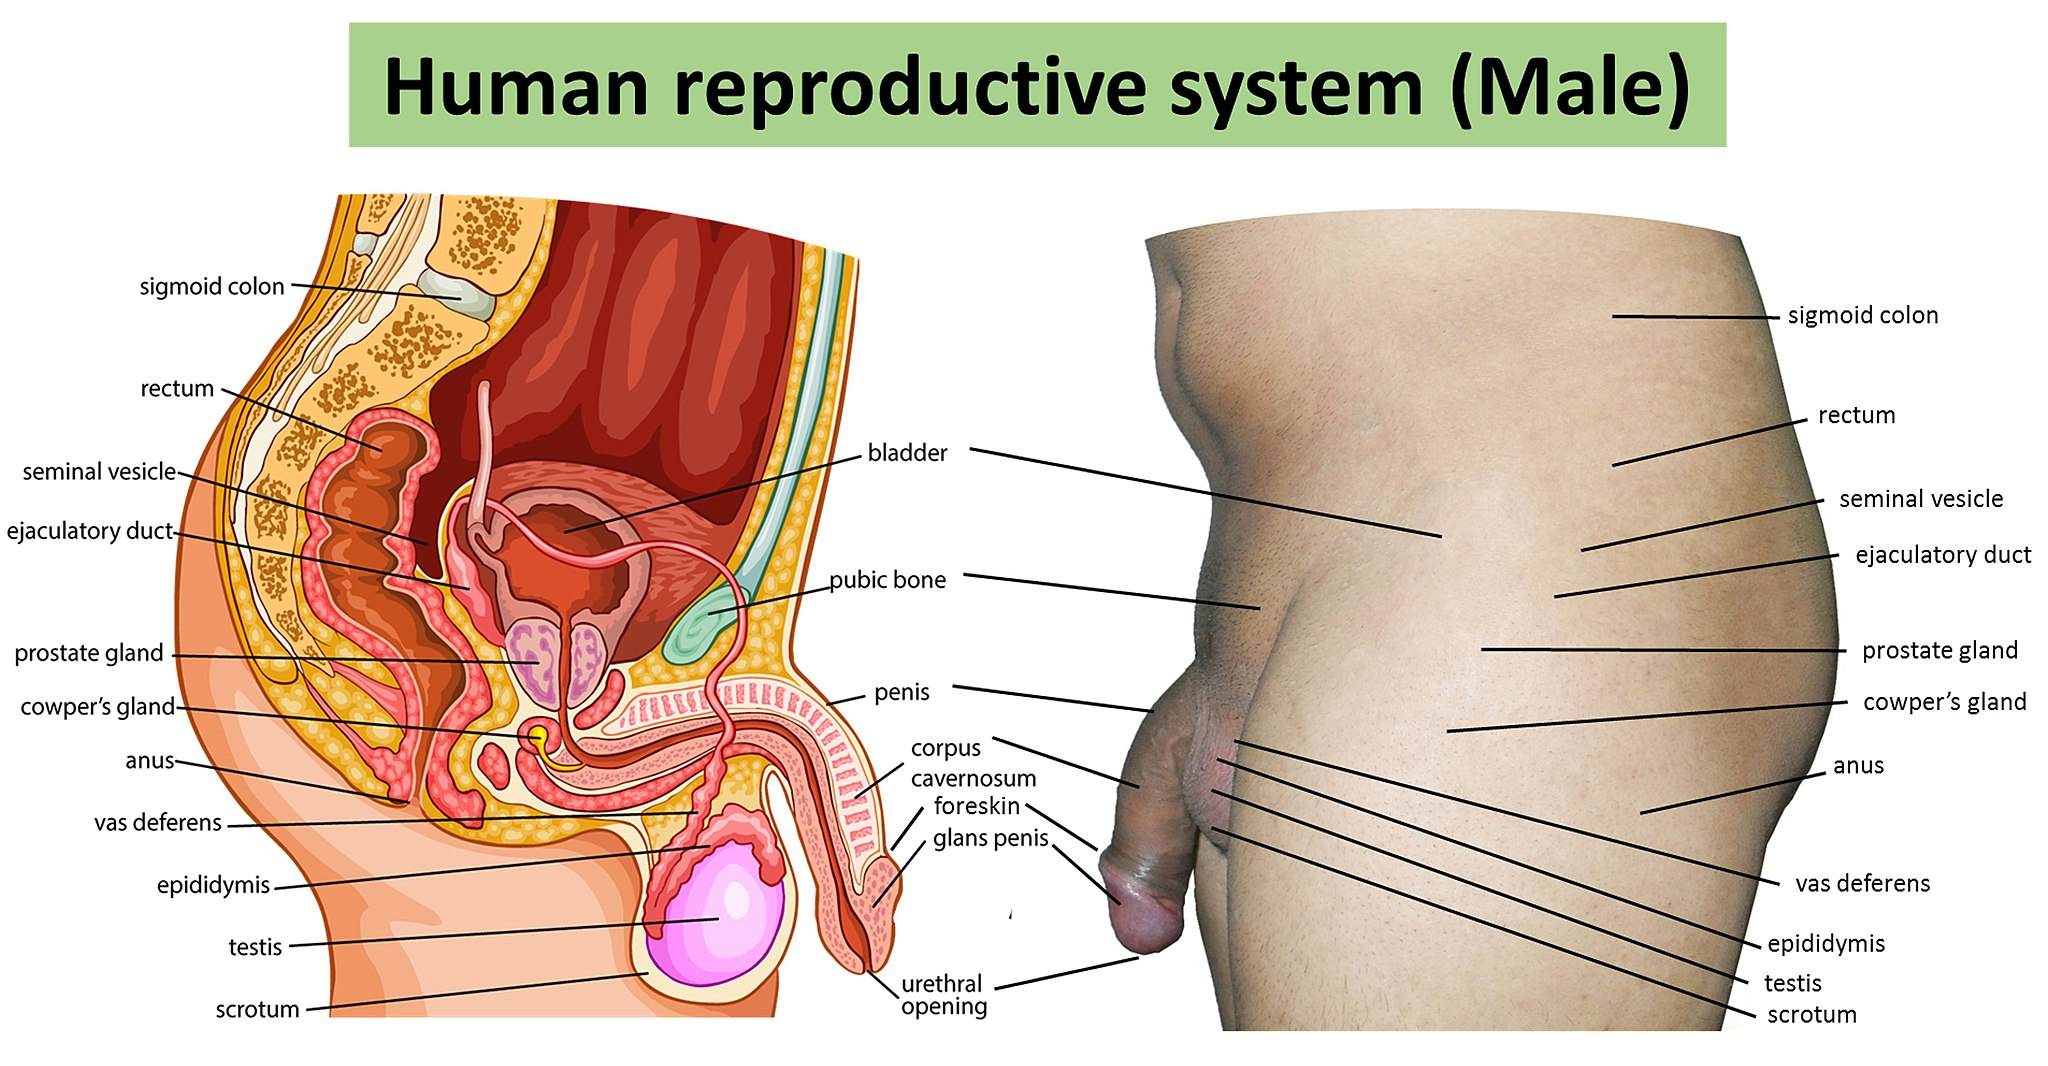 18.3.2 The Male Reproductive System